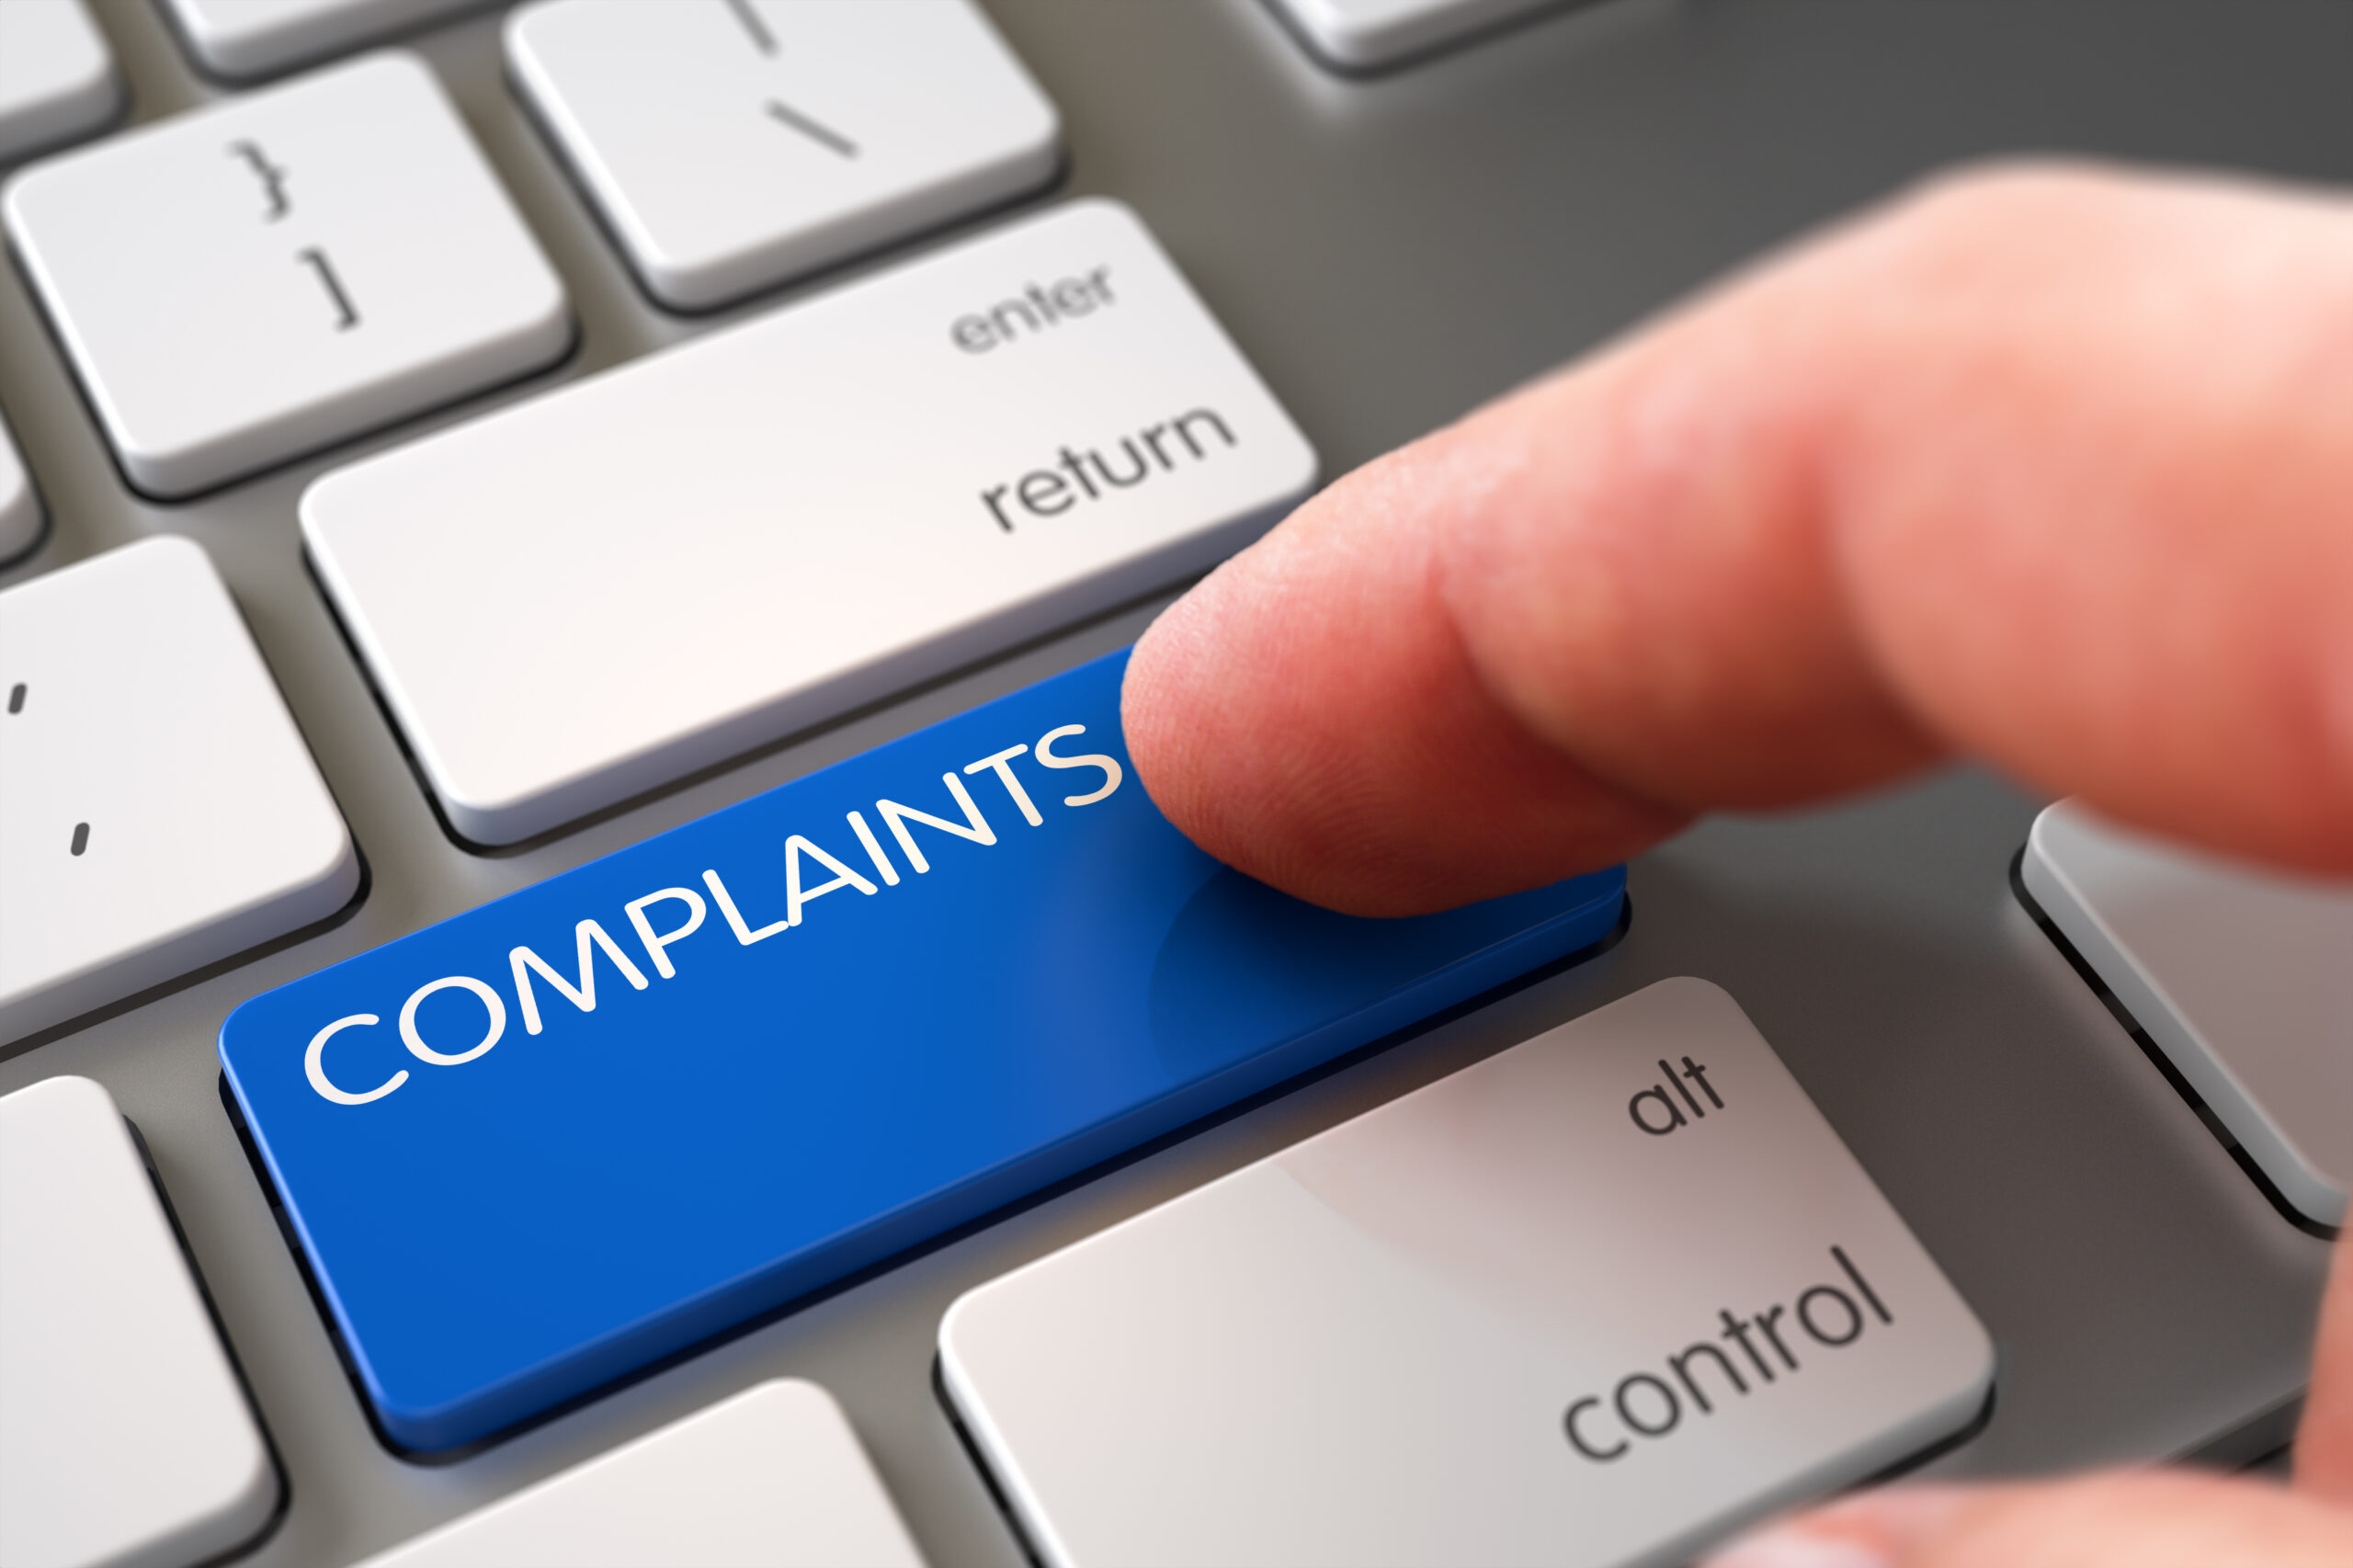 Entering complaints on a keyboard